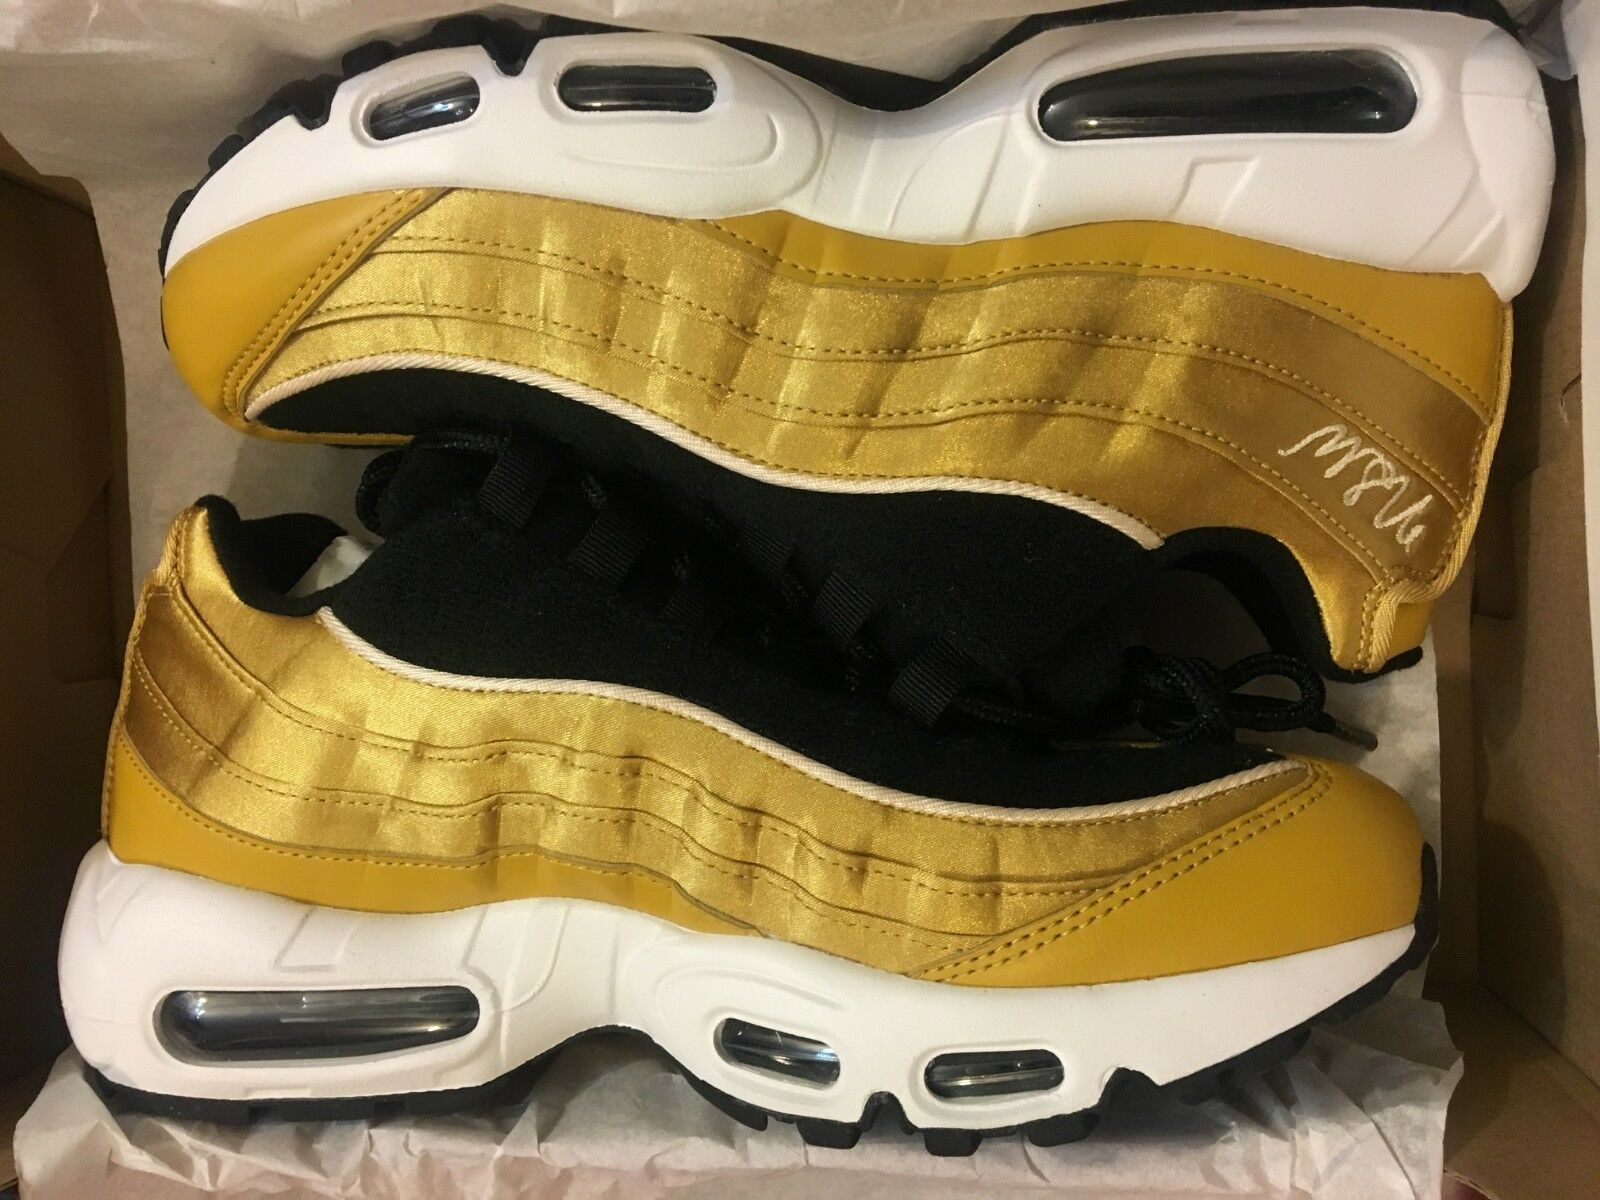 0332eb4bfd Nike Air Max 95 LX Womens Aa1103-700 Wheat Gold Black Running Shoes ...